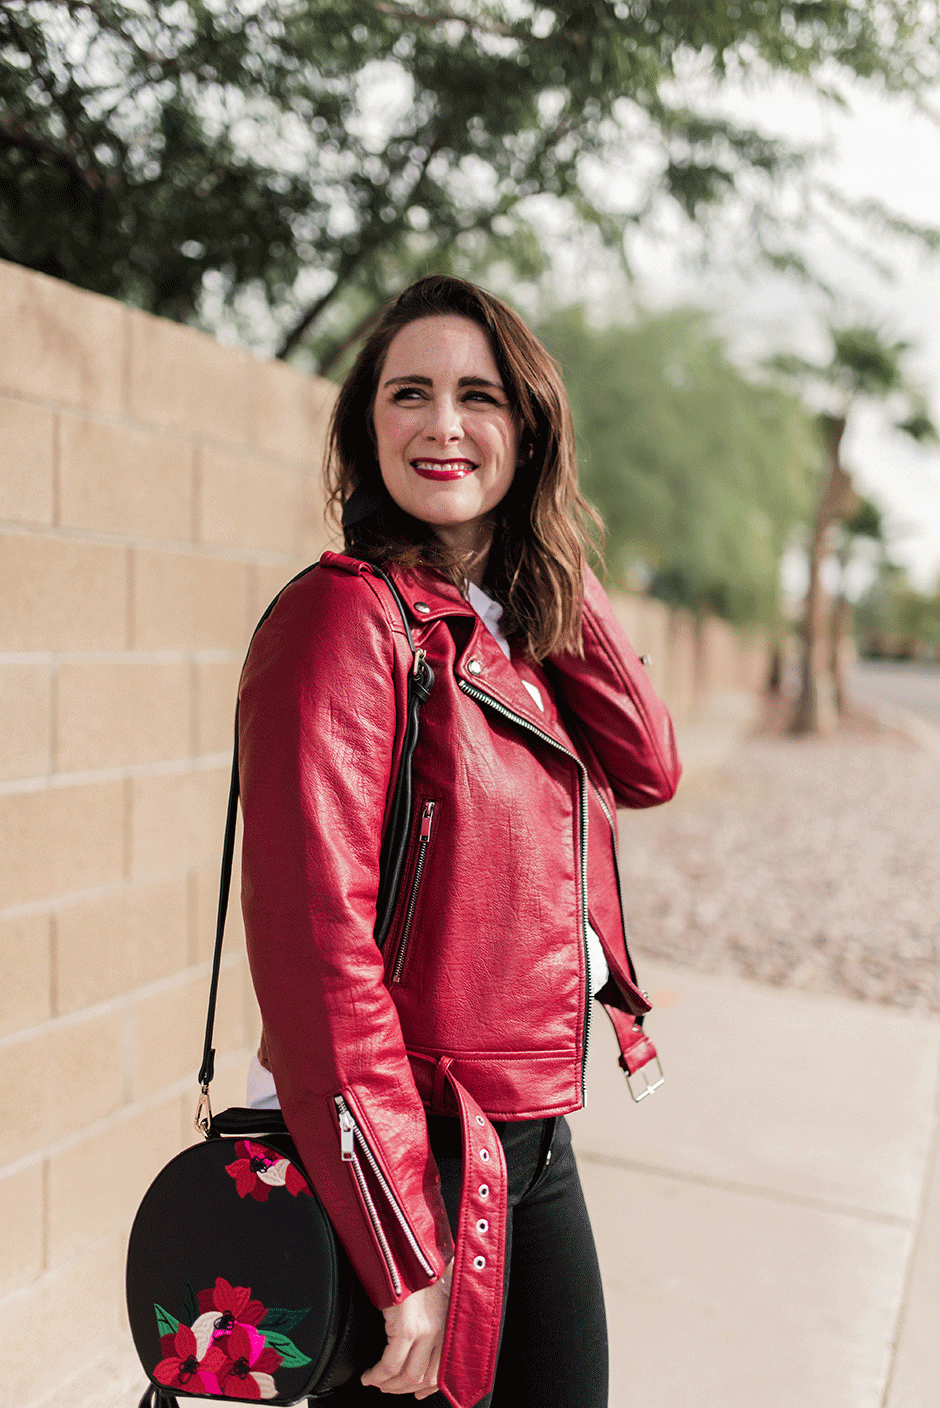 Ever stumped on what to choose for a casual get together with friends? This tough-girl look is the perfect party outfit inspiration. Womens fashion doesn't have to be hard - a leather jacket, jeans and heels do the trick!